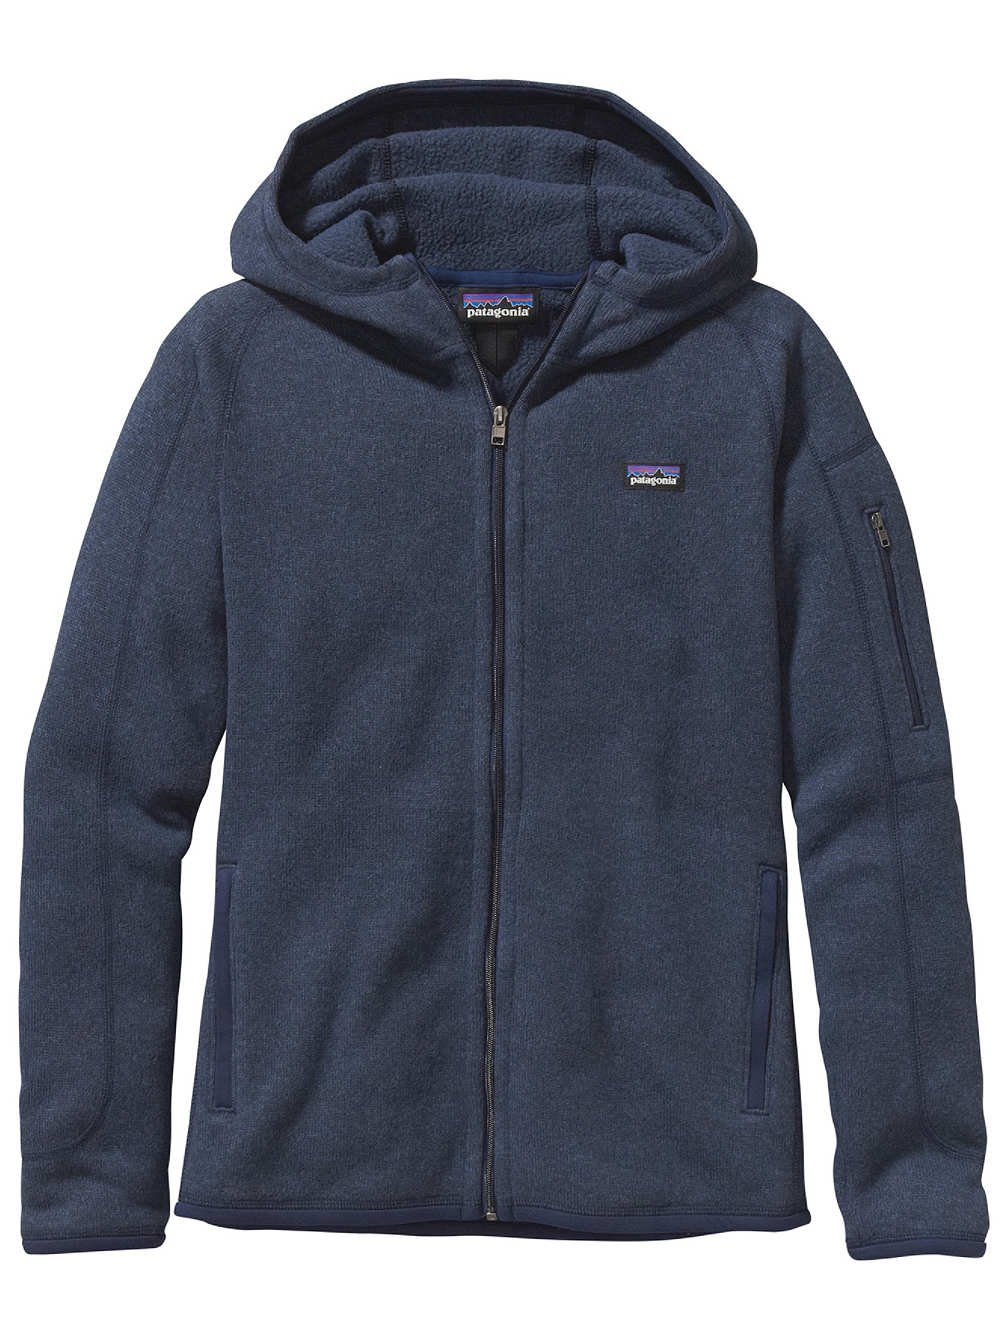 Patagonia Better Sweater Full-Zip Hooded Jacket - Women's Classic Navy, XS